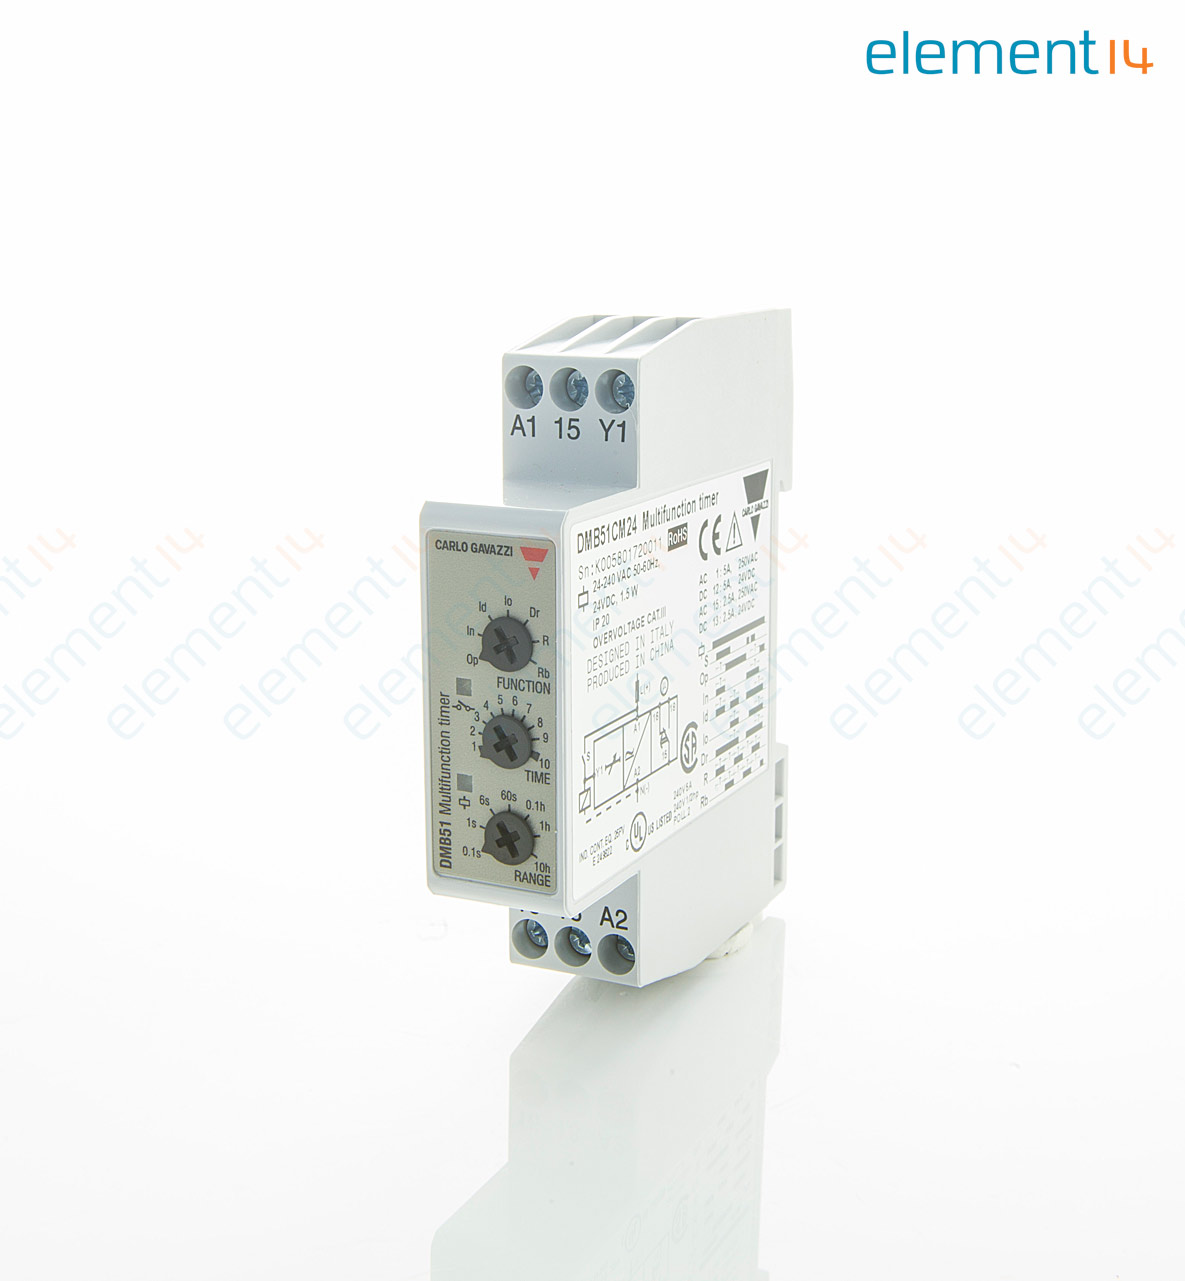 Power Changeover Relay Dmb51cm24 Carlo Gavazzi Analog Timer Dmb51 Series Multifunction 01 S 100 H 7 Ranges 1